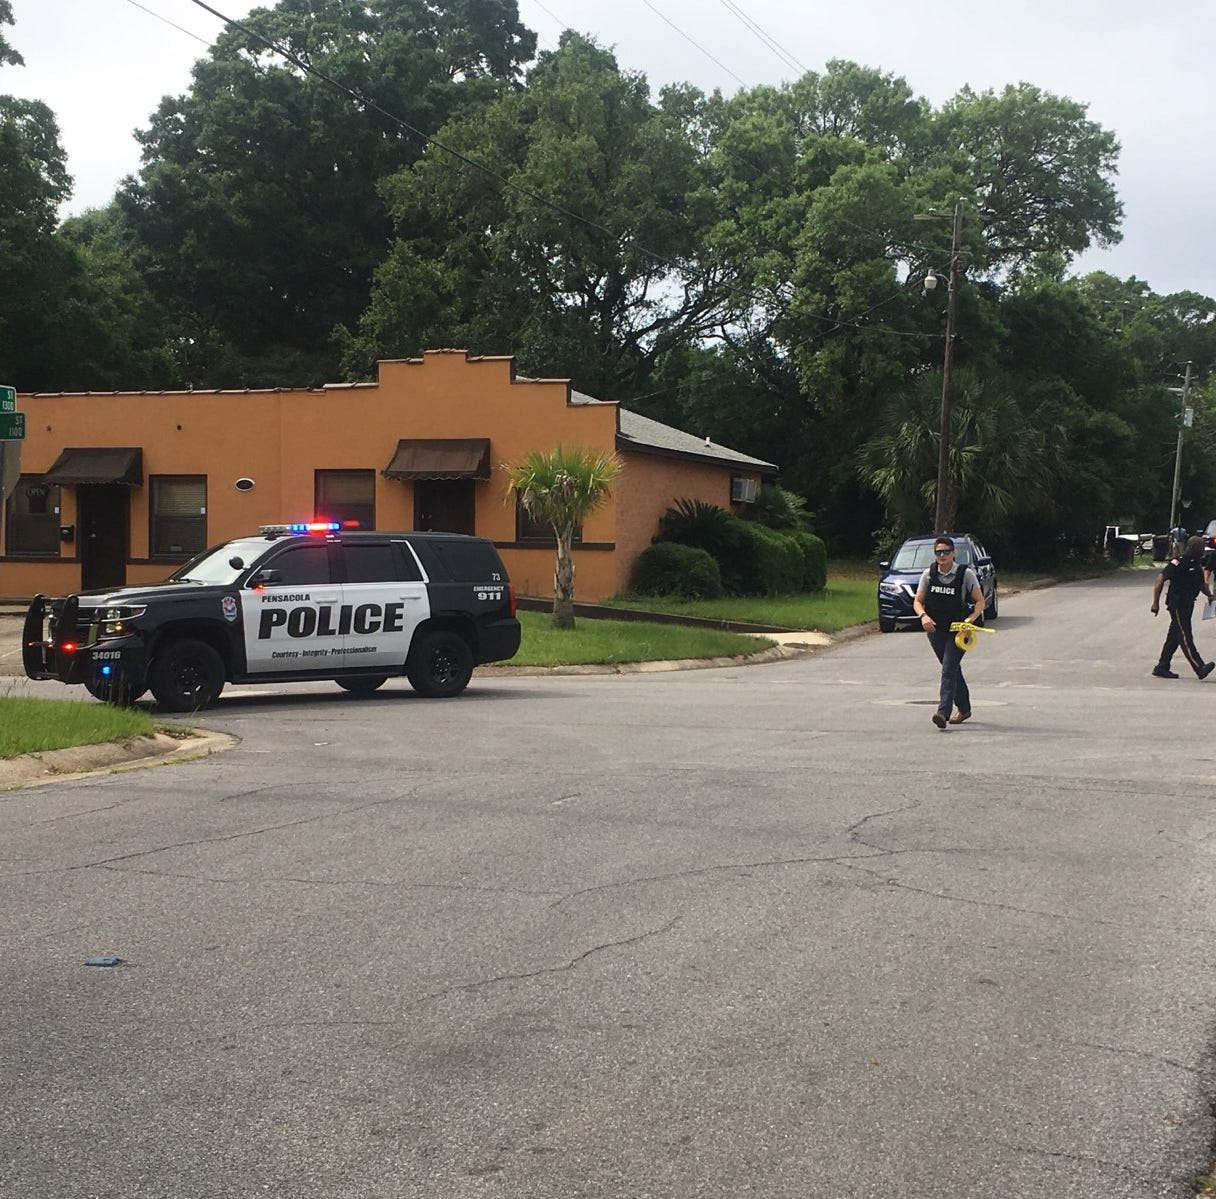 Standoff on West Lloyd Street after suspect barricades himself in home